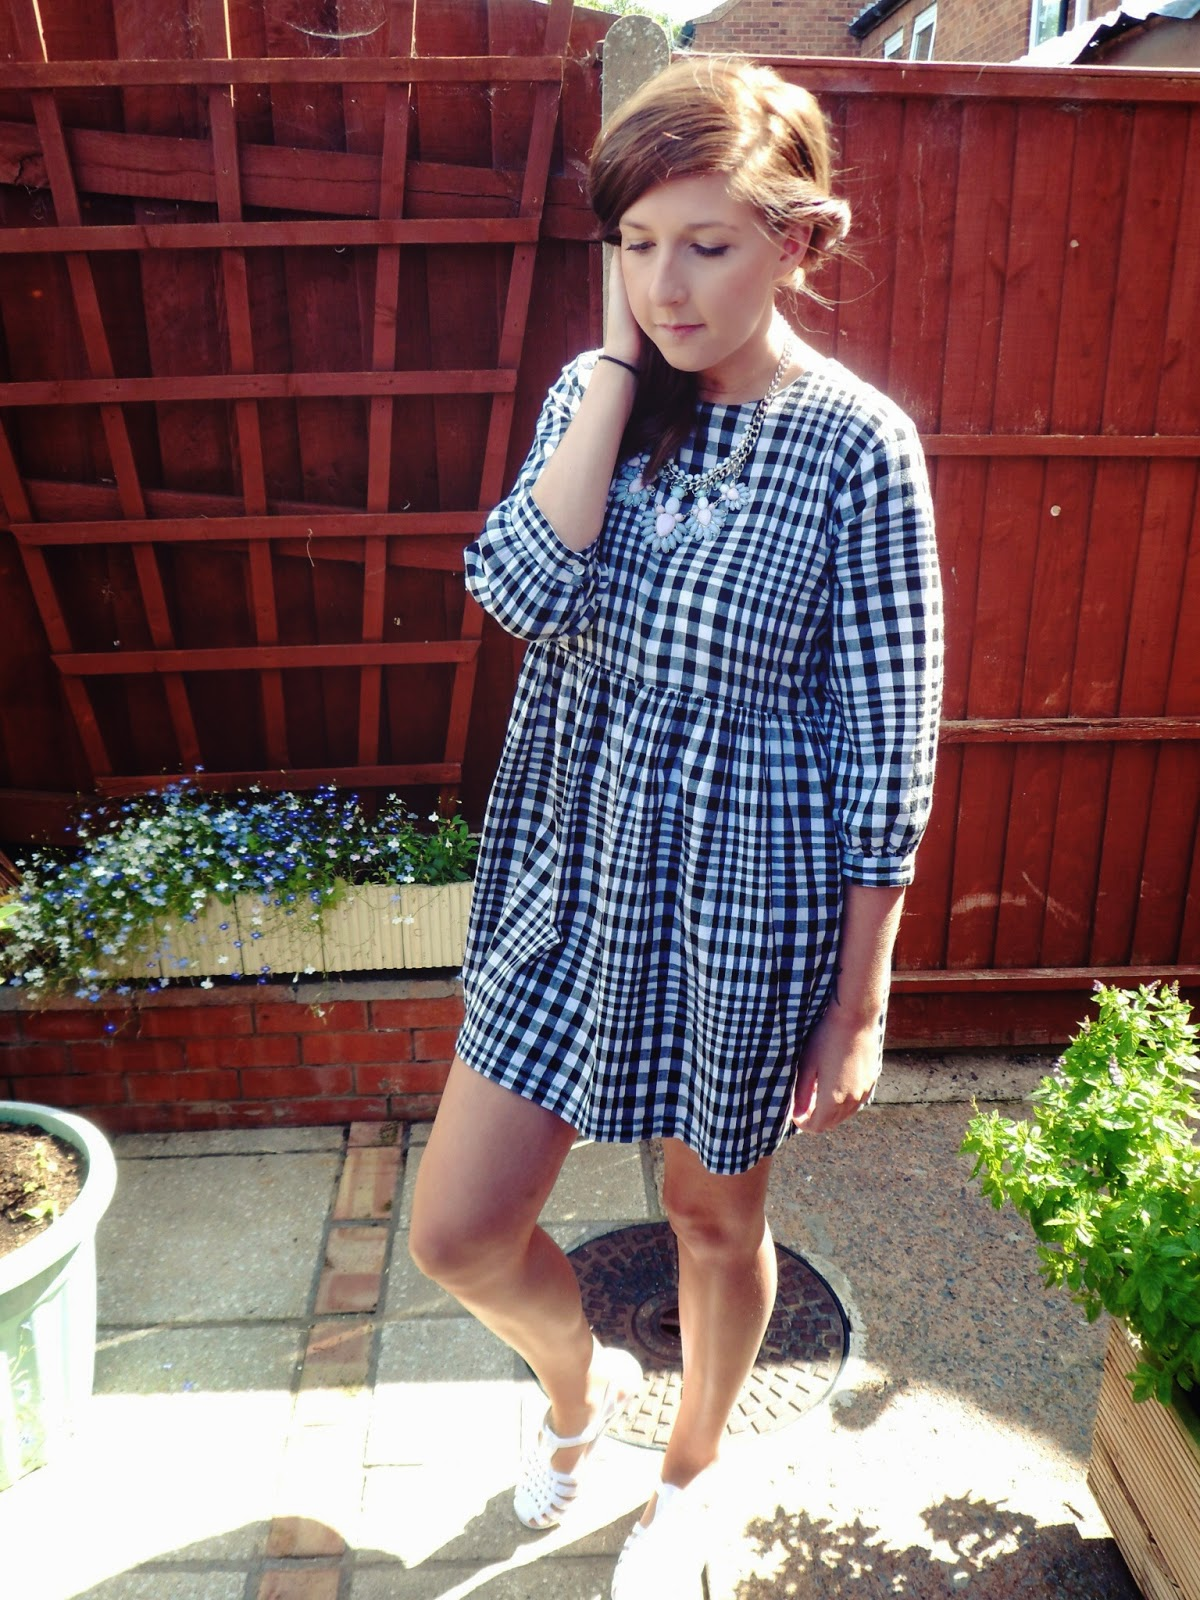 fbloggers, fashionbloggers, wiw, whatimwearing, ootd, outfitoftheday, checkdress, topshop, whatibought, fashion, primark, necklace, pastel, blackandwhite, monochrome, smockdress